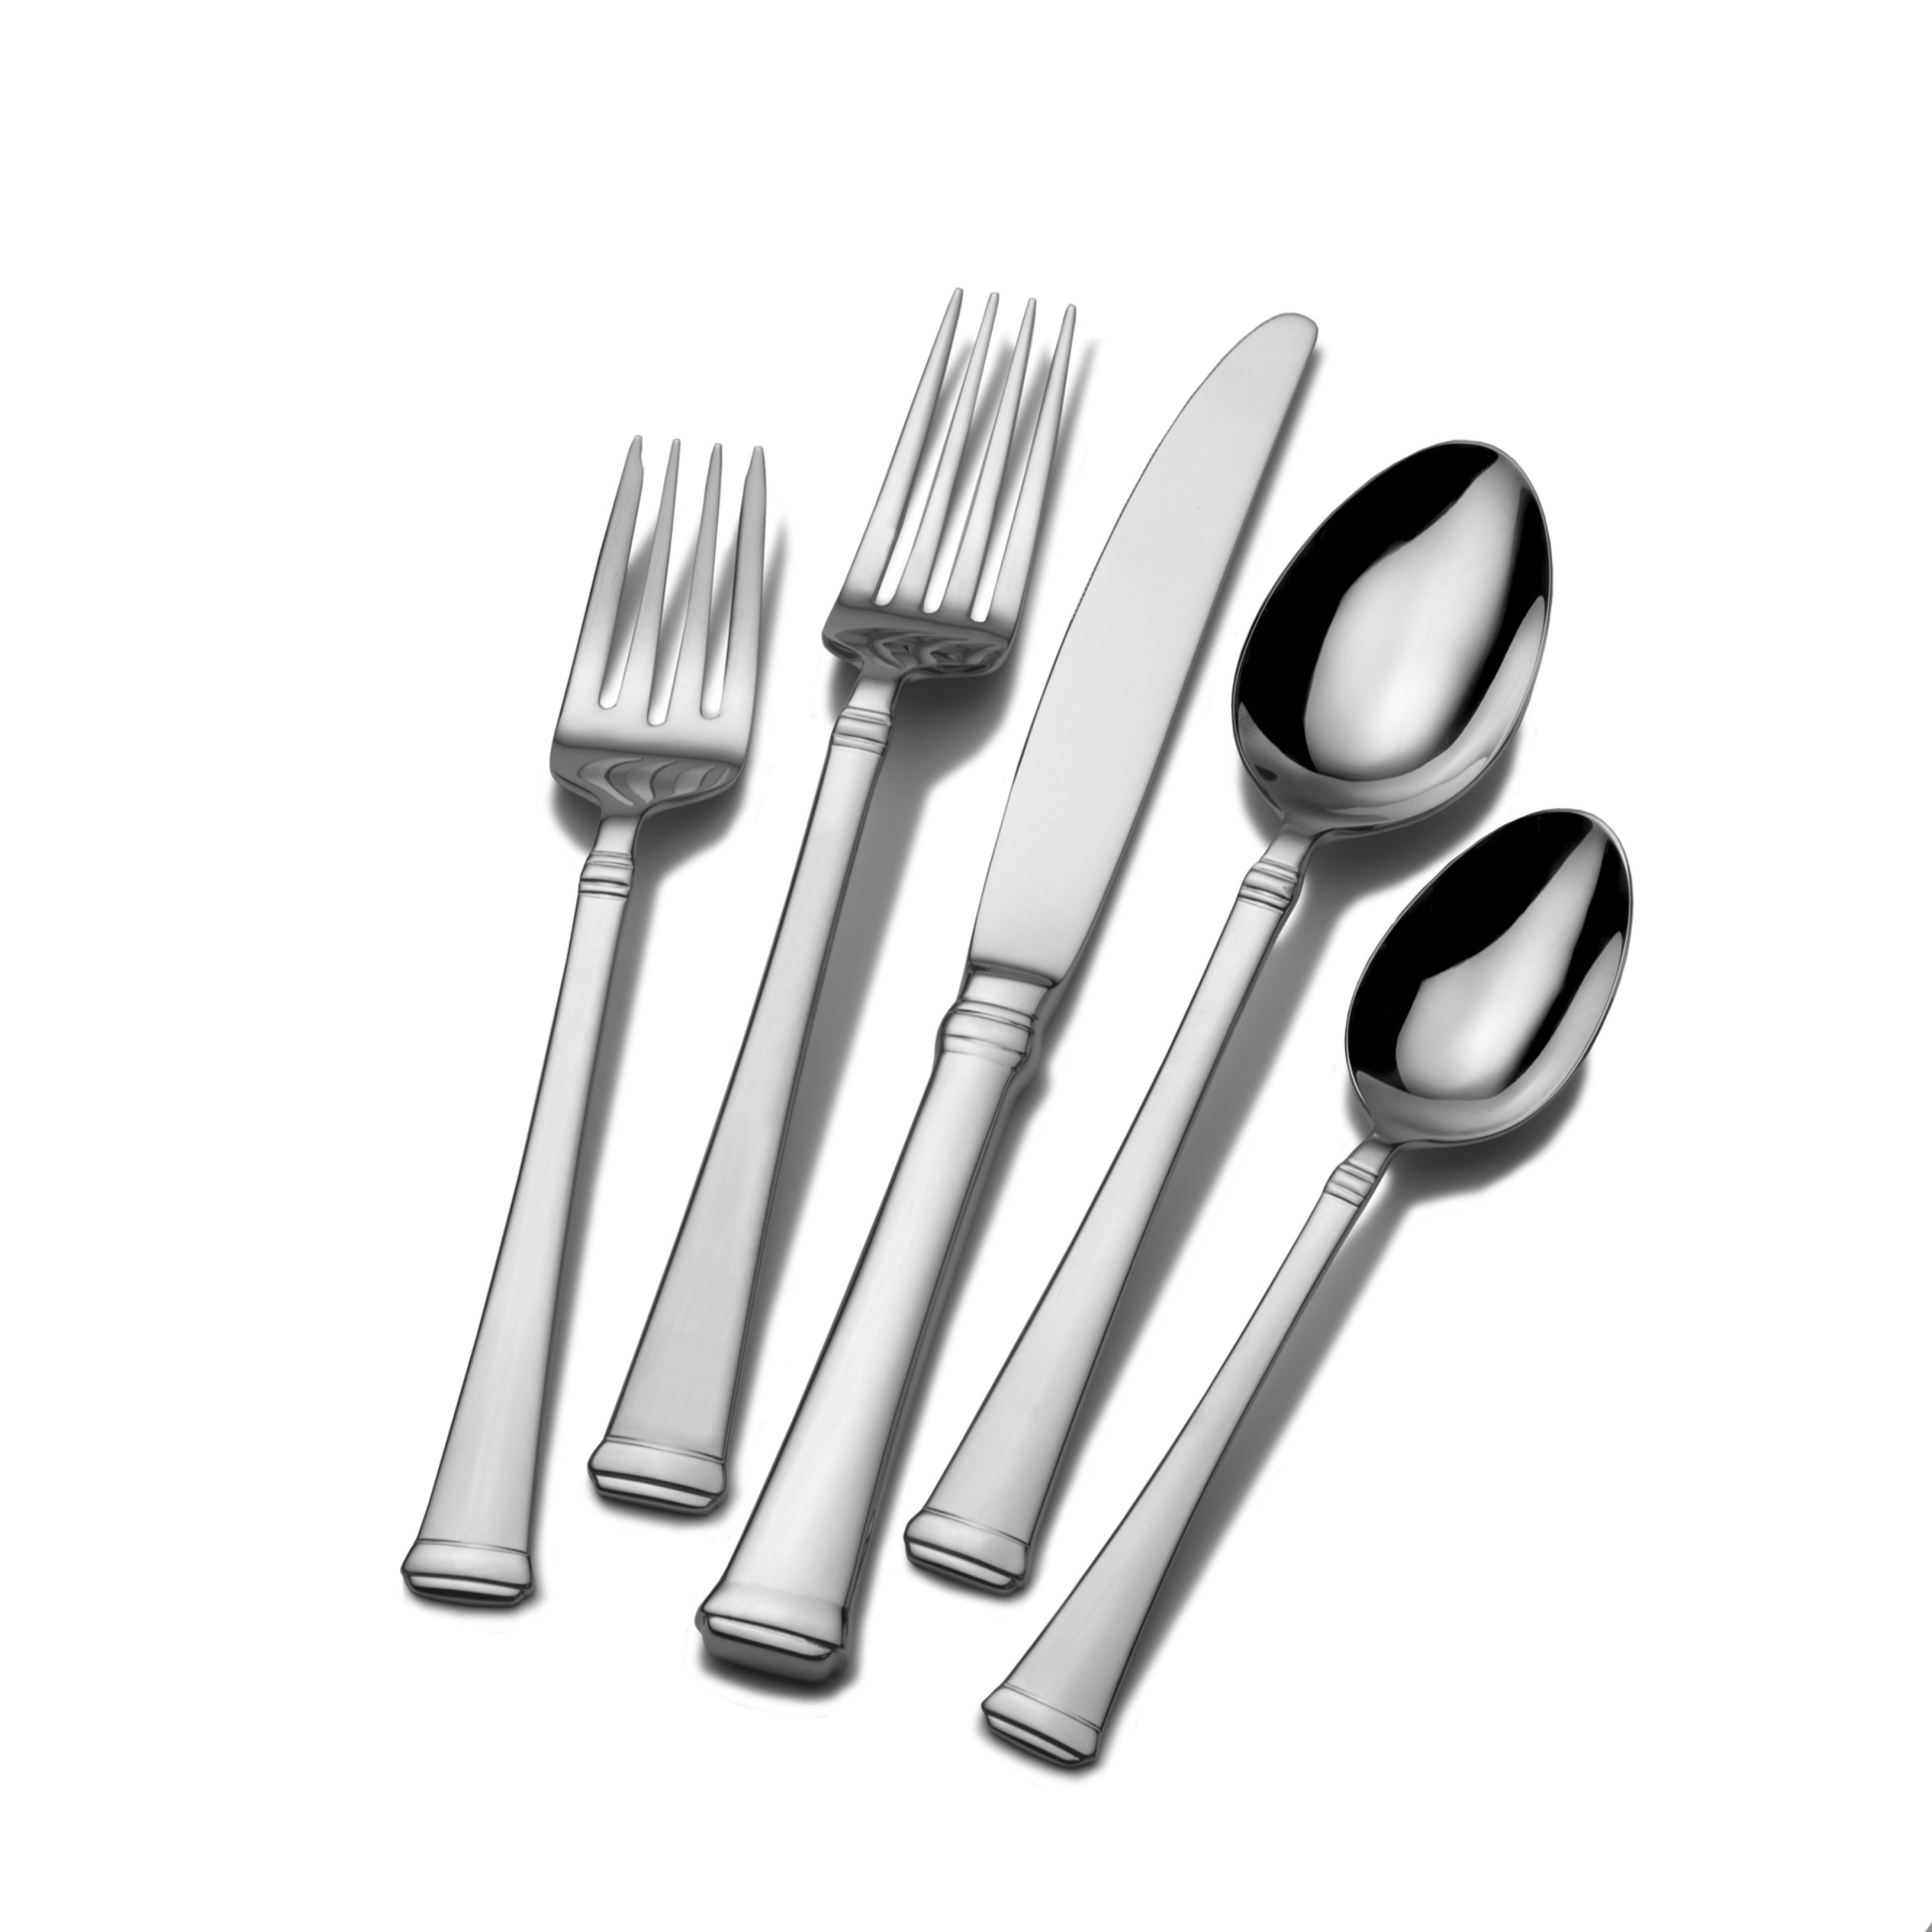 Mikasa Harmony 65-Piece Stainless Steel Flatware Set with Serveware, Service for 12